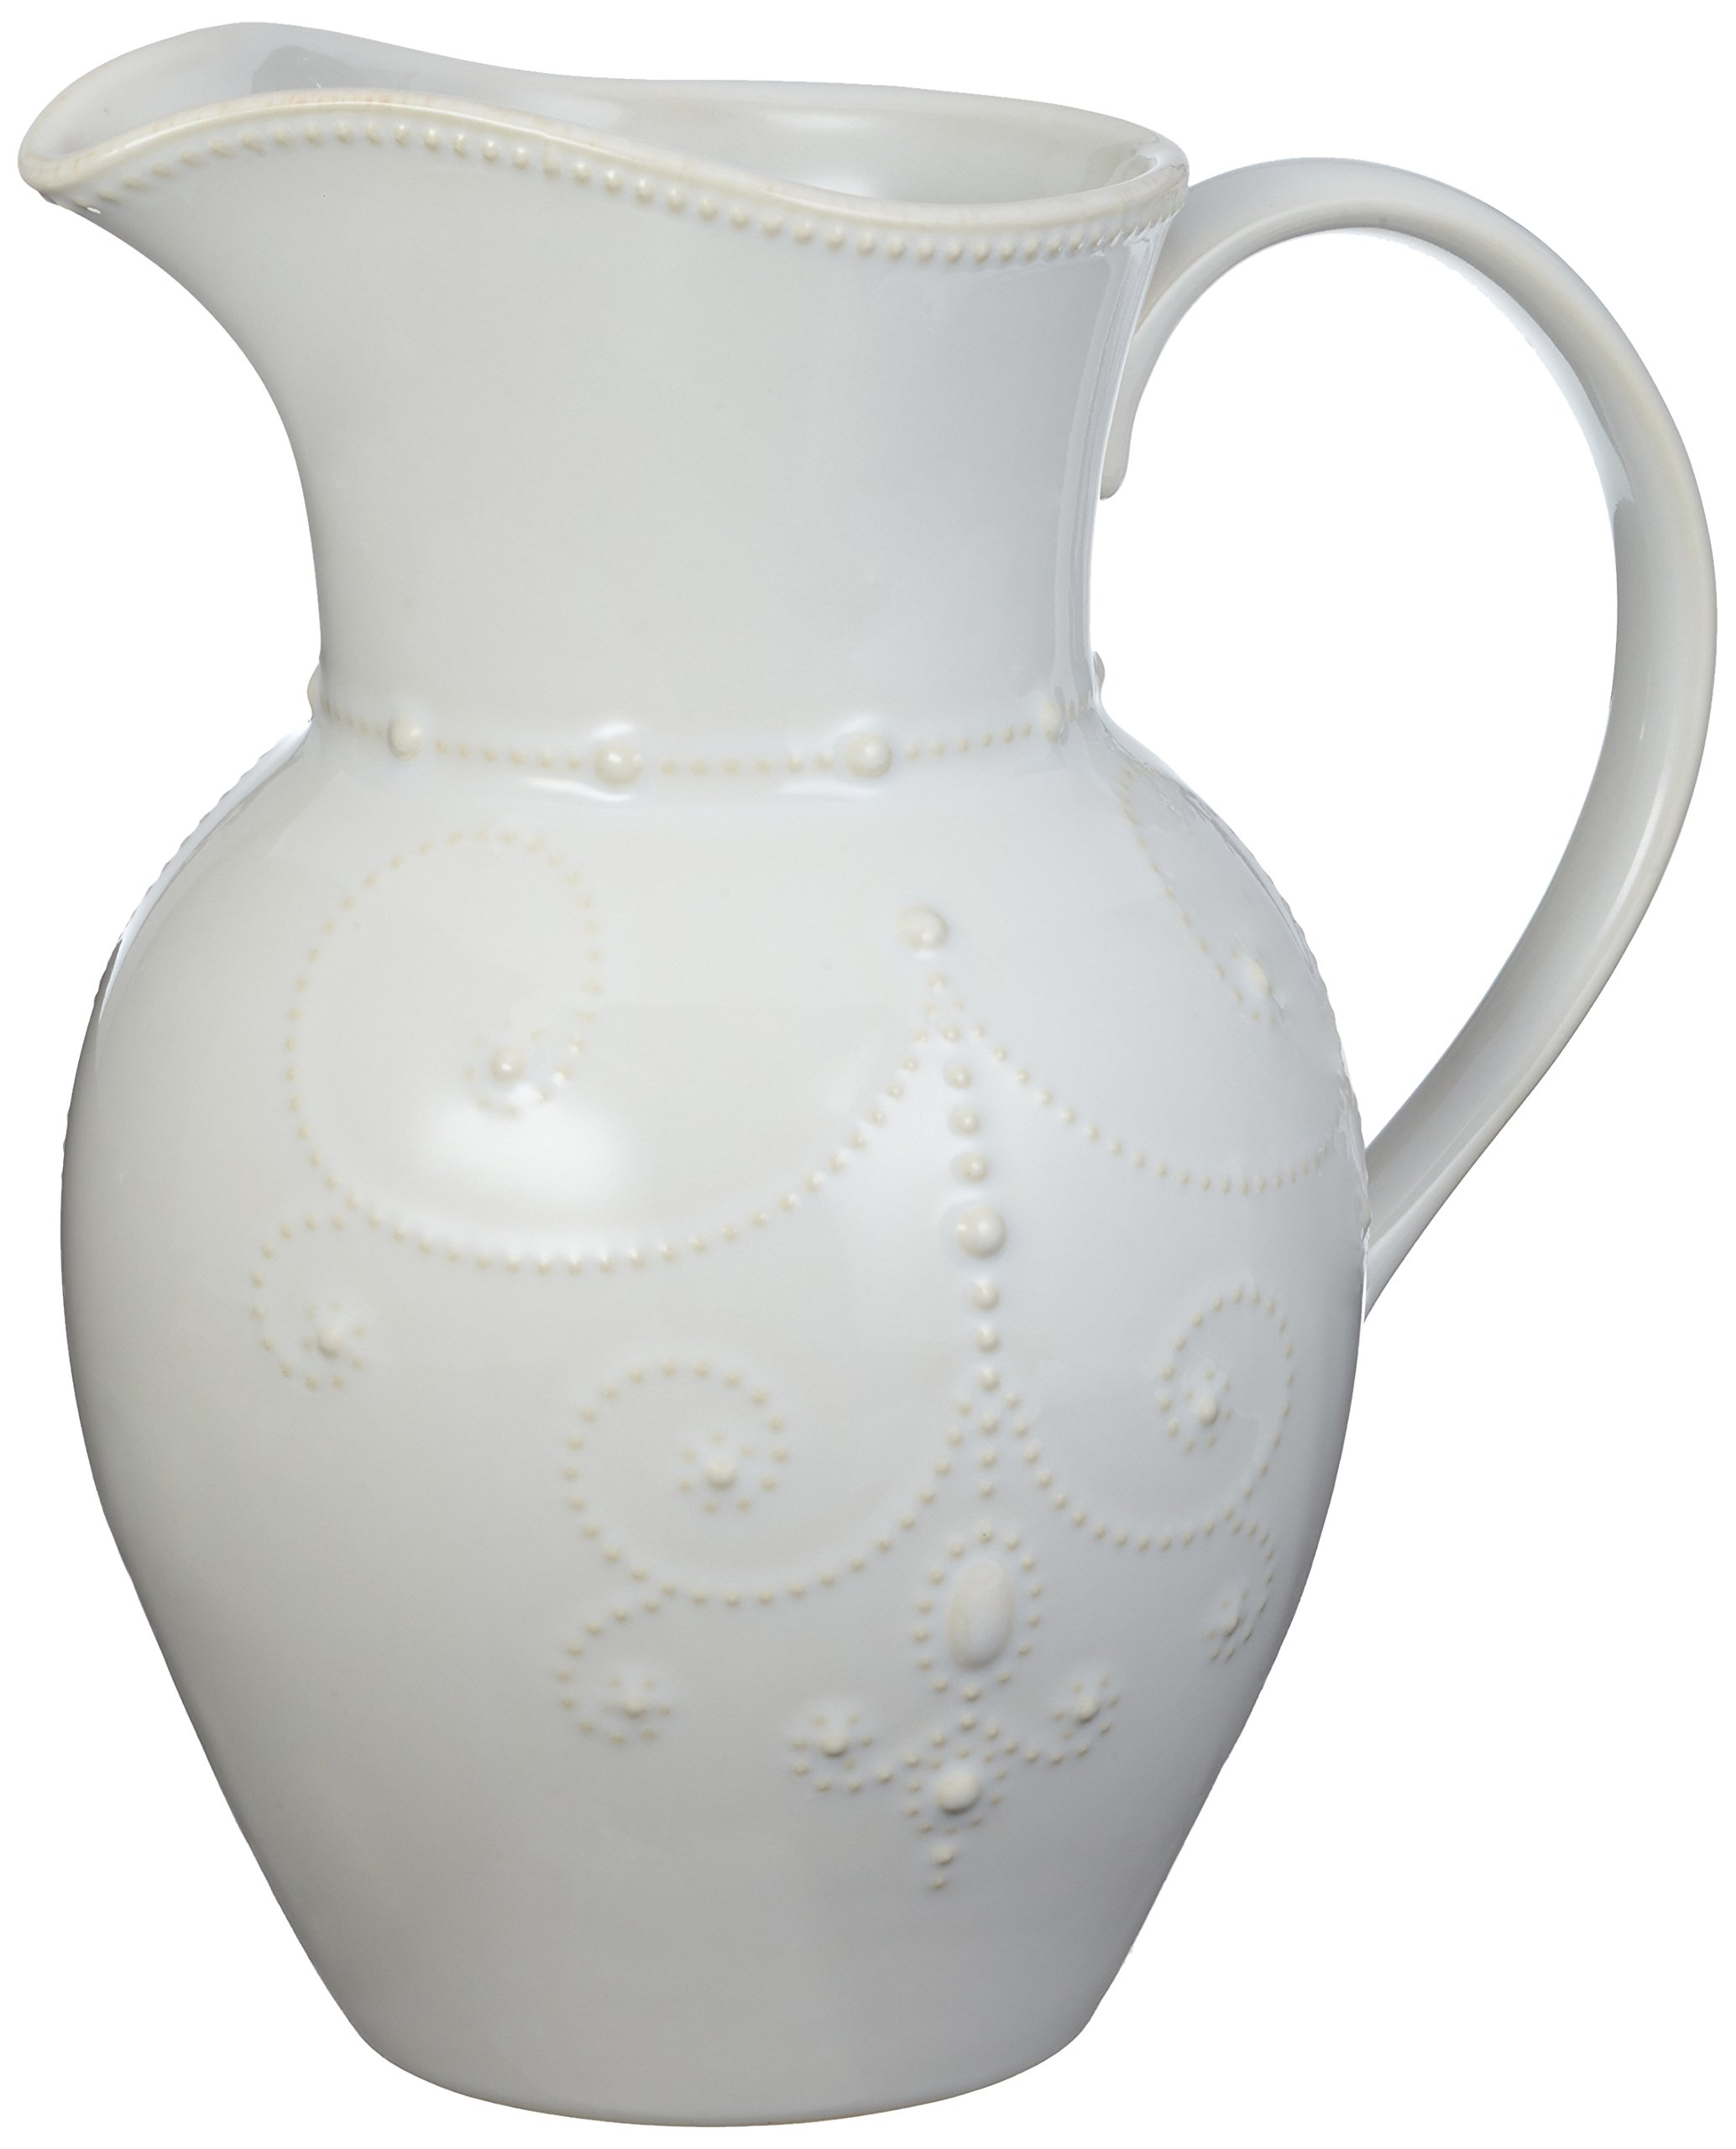 Lenox French Perle Pitcher, Large, White by Lenox (Image #1)